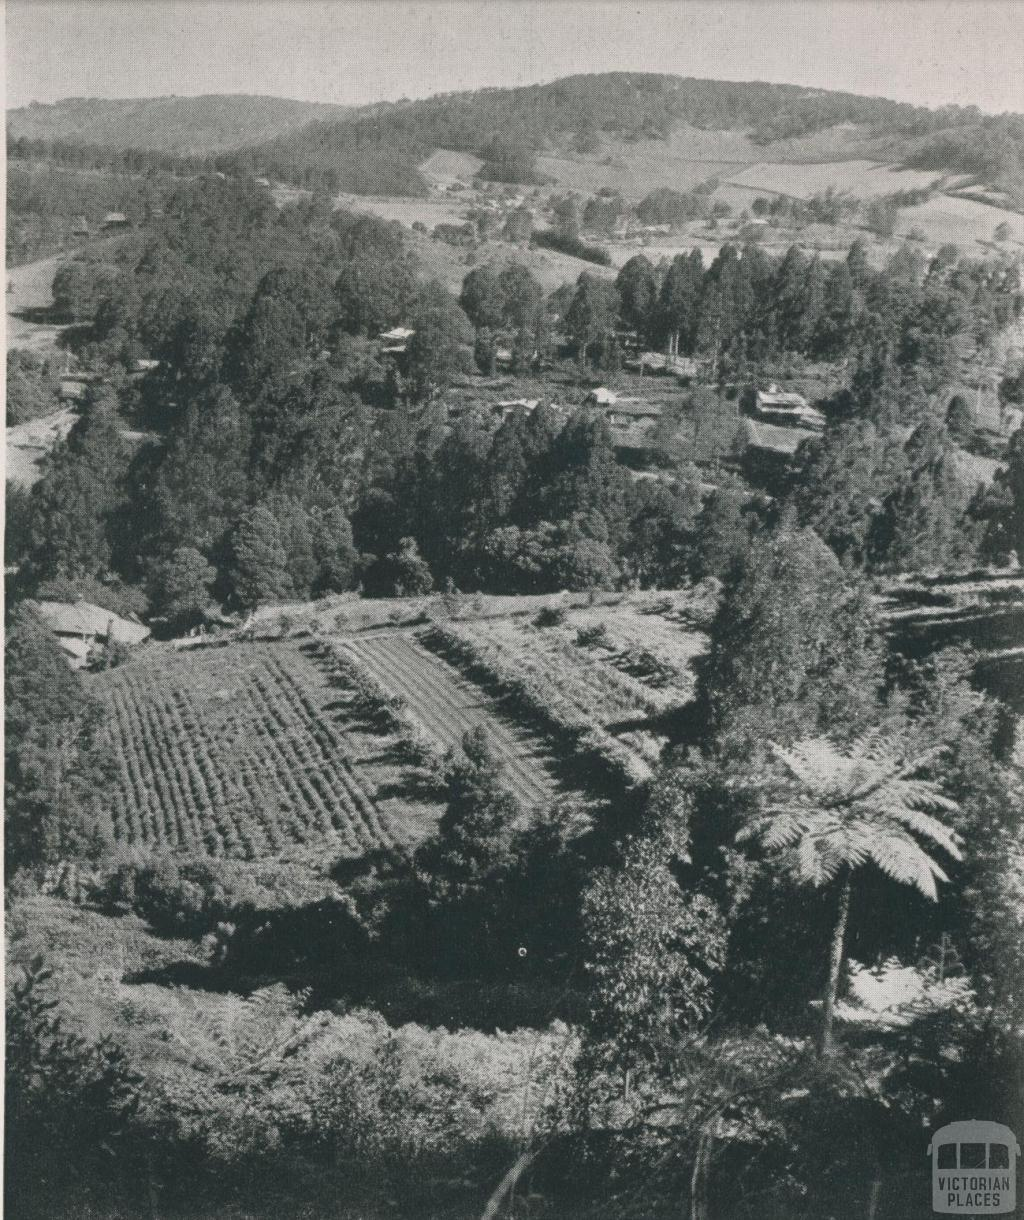 Overlooking The Patch, 1955